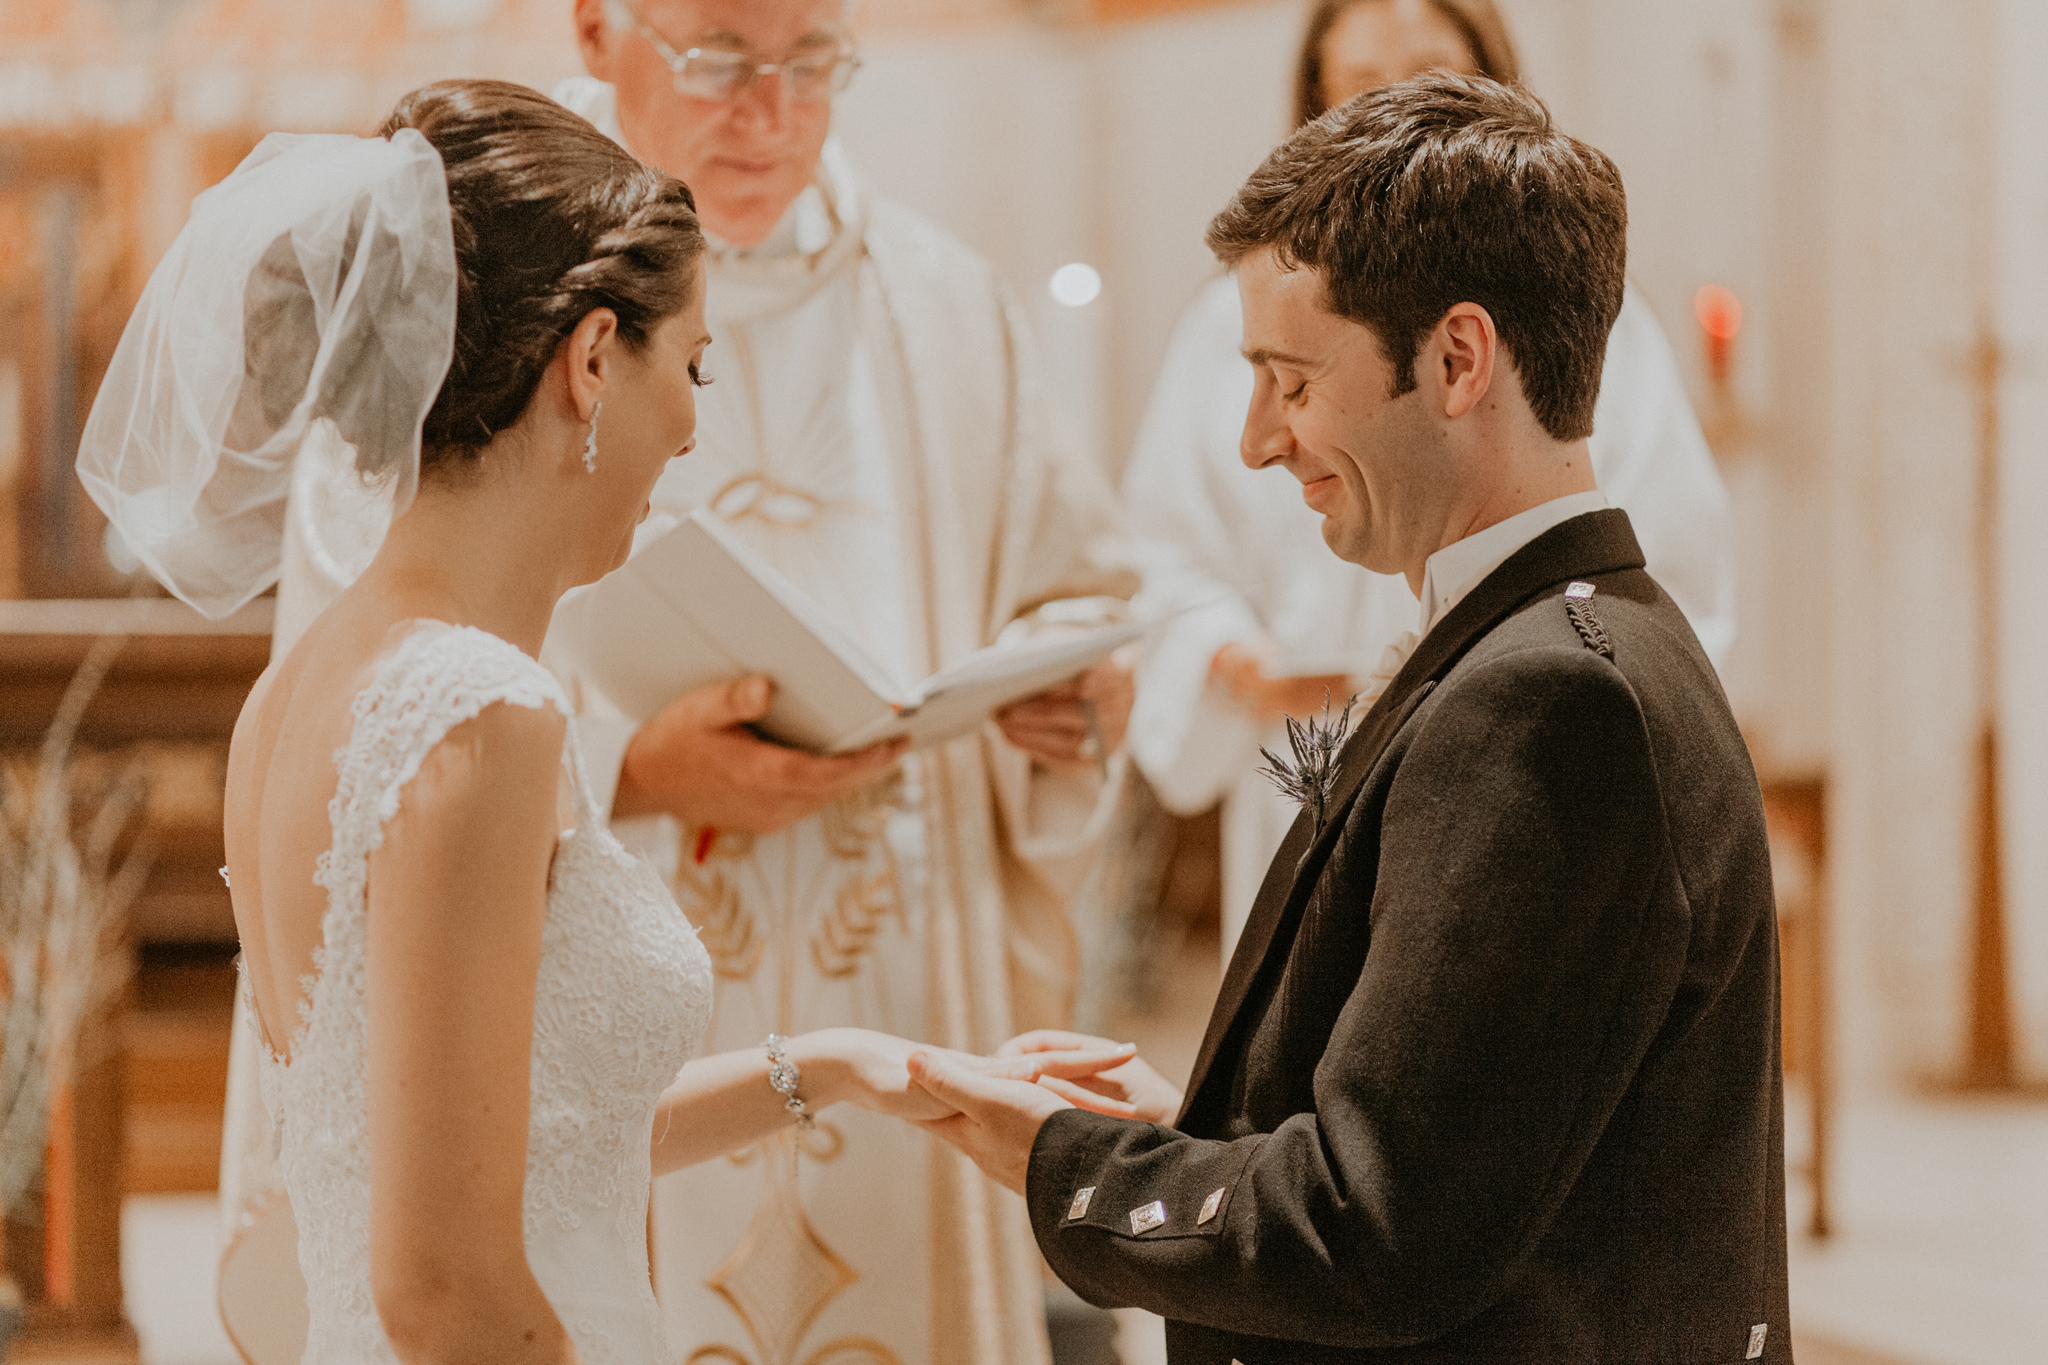 Groom smiling while placing ring on bride's finger